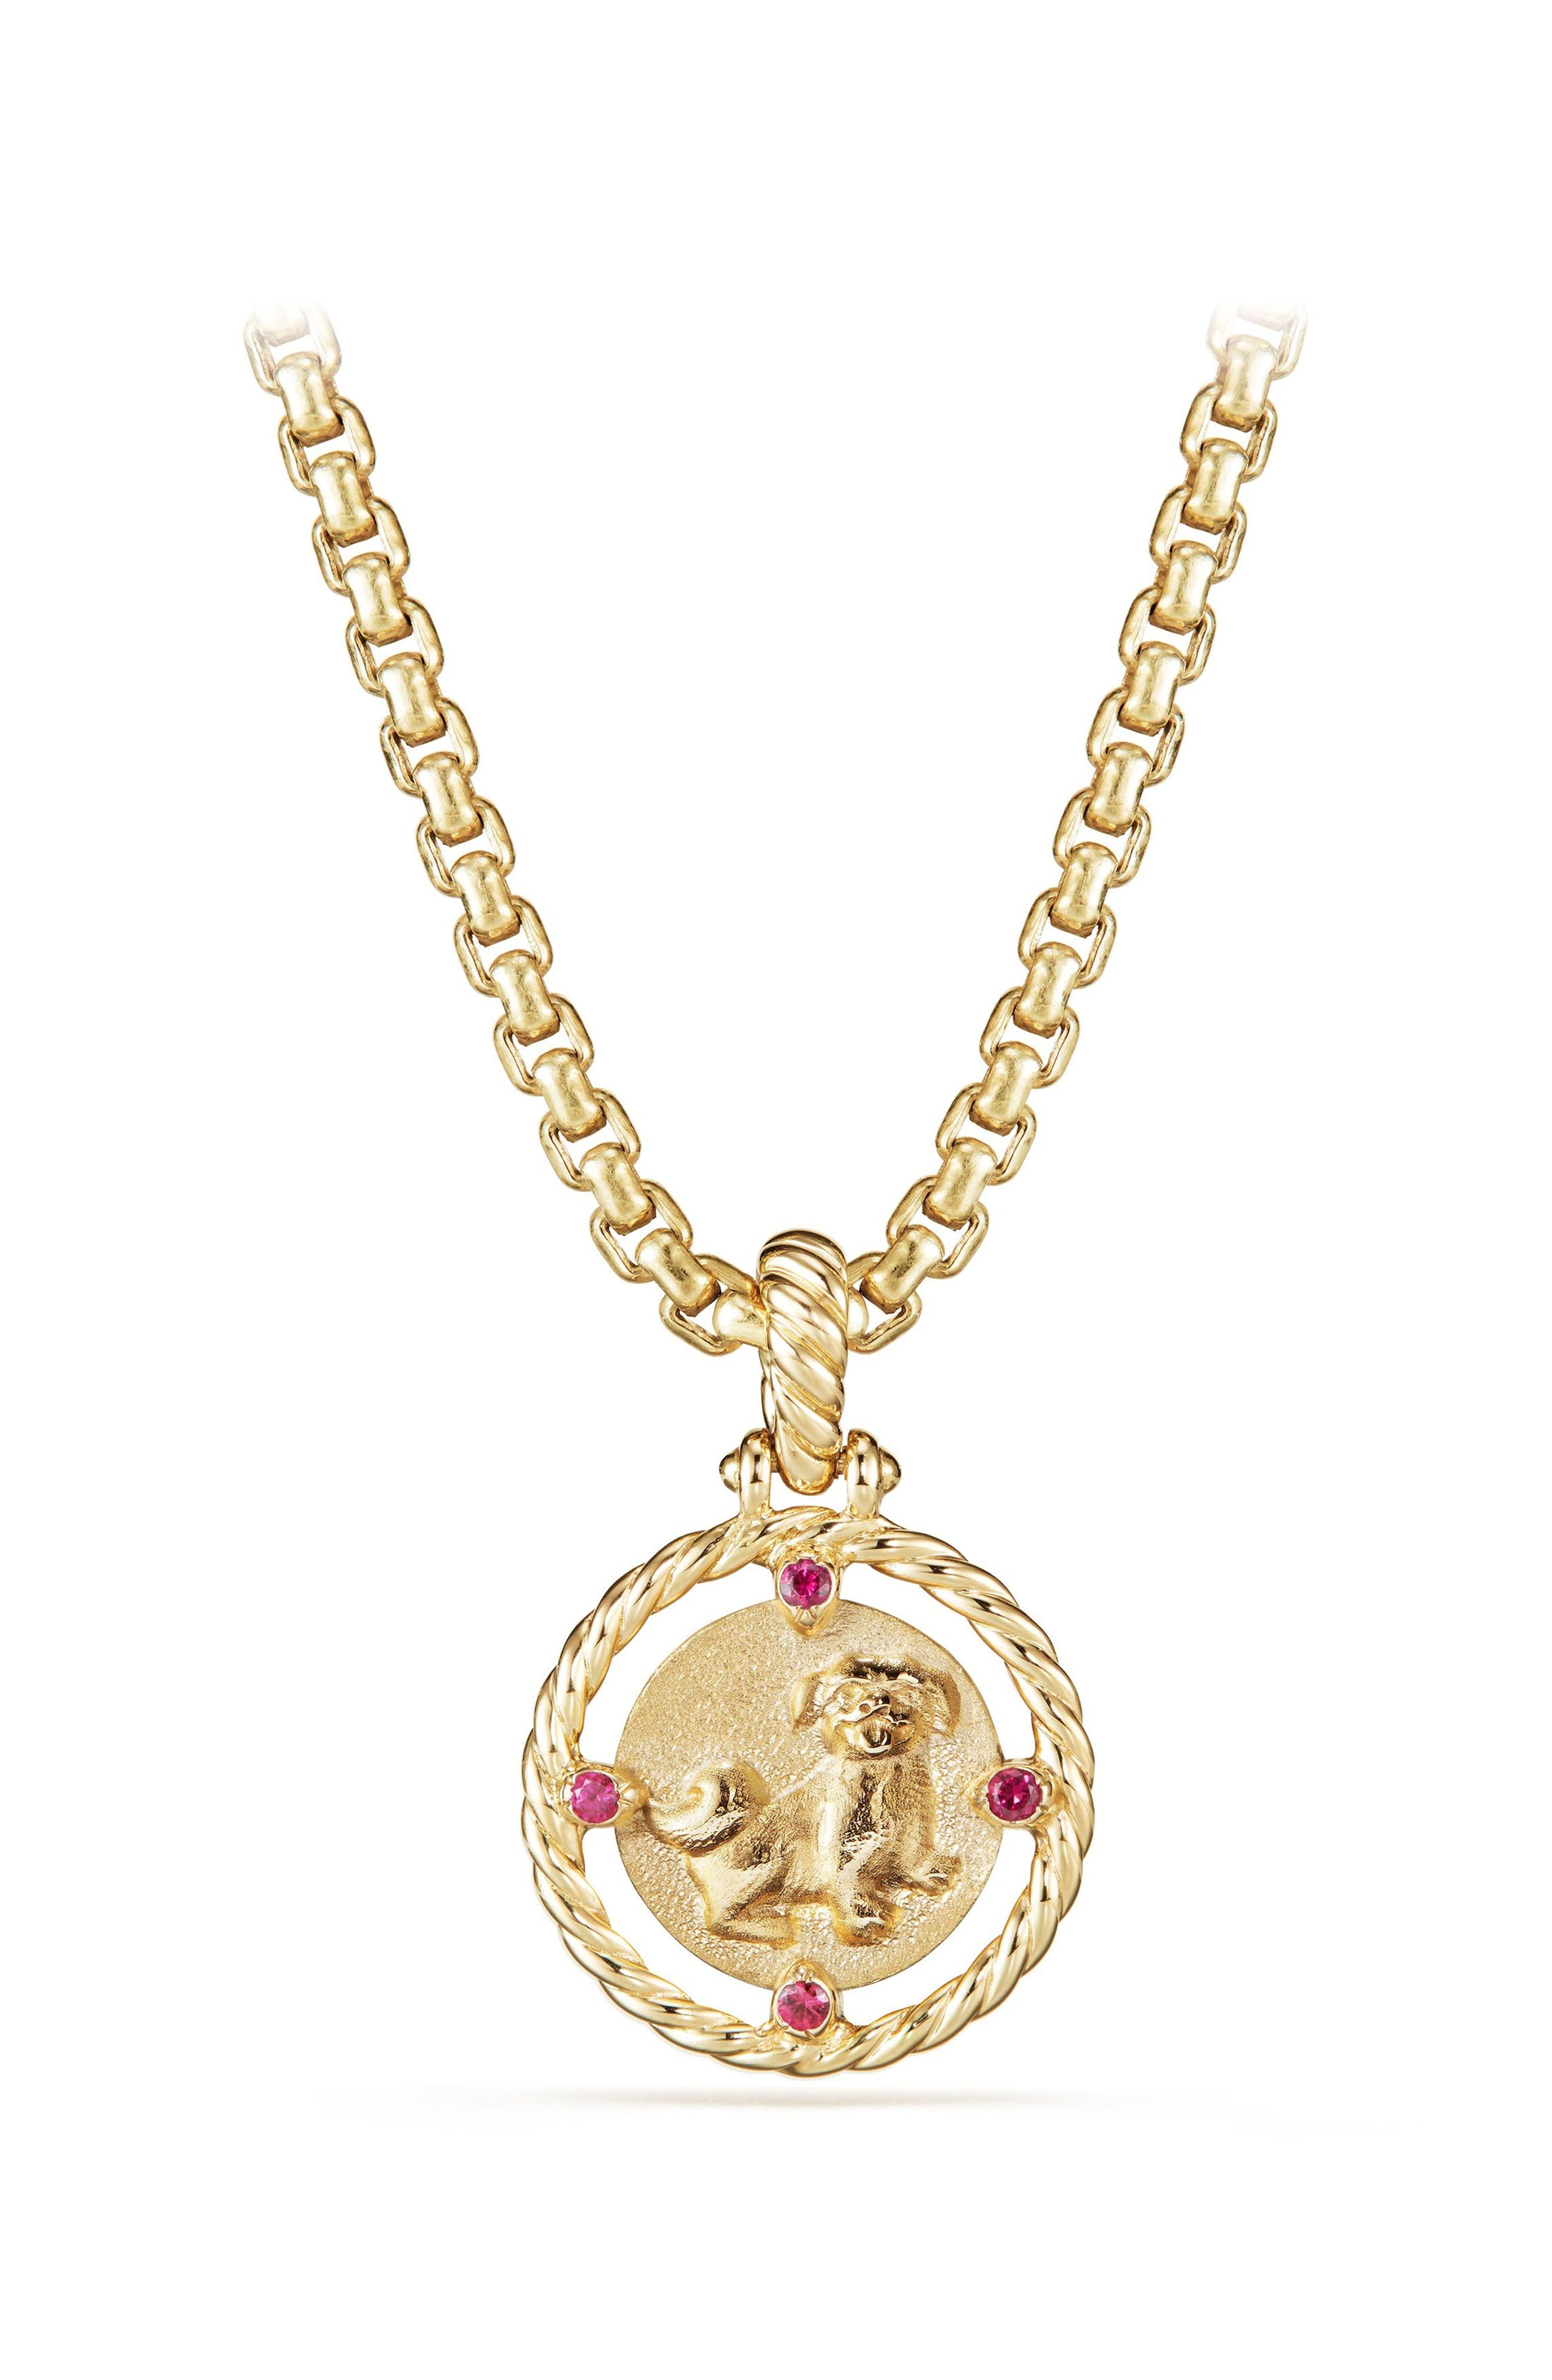 Lunar New Year Charm in 18K Gold with Rubies,                             Main thumbnail 1, color,                             710